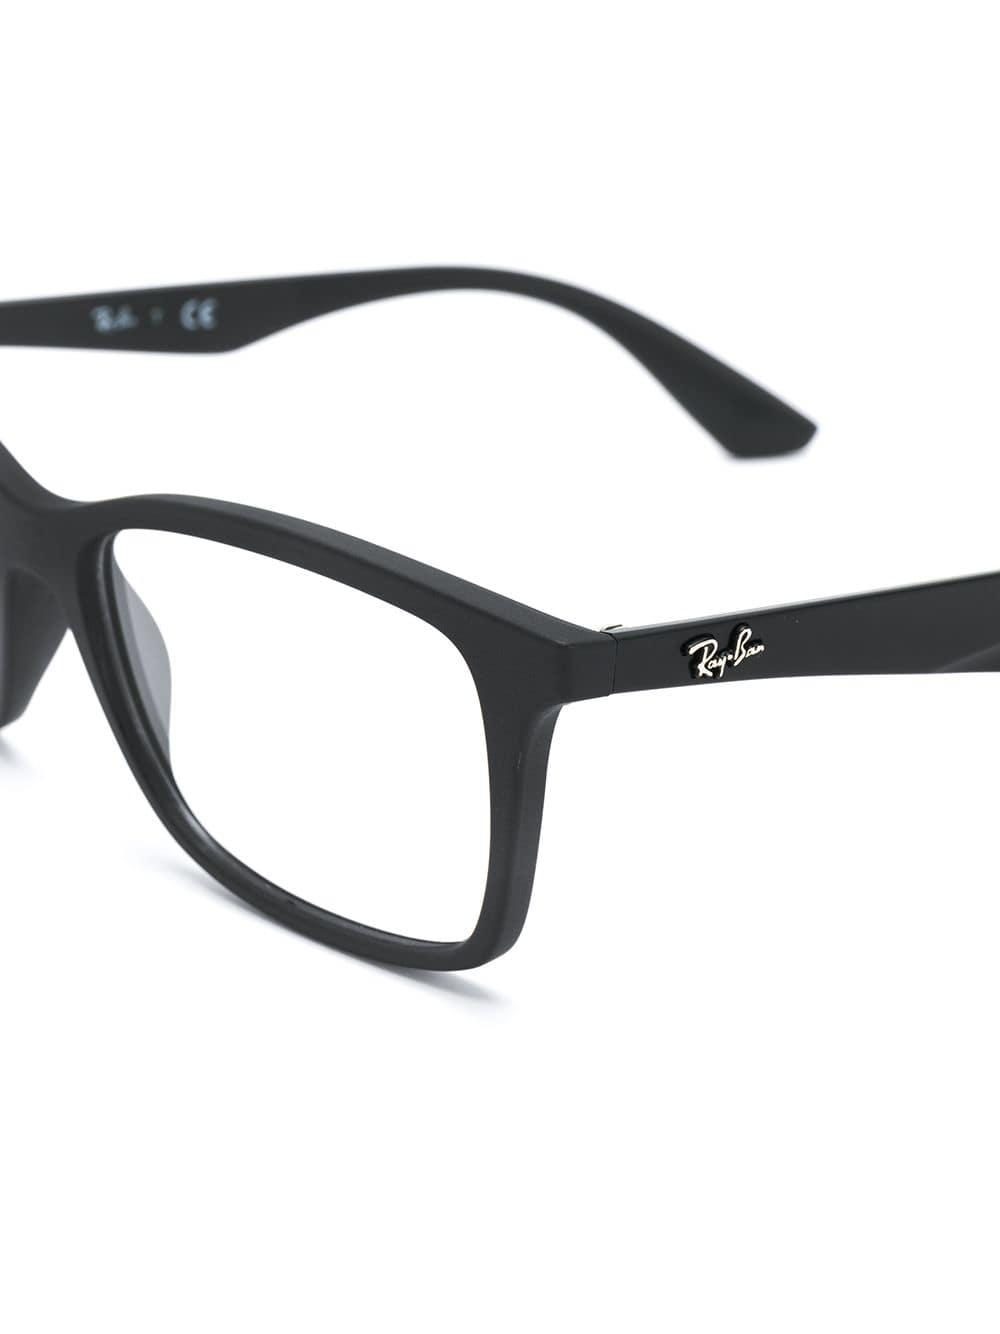 7bd7a8b0c332c Ray-Ban Rectangle Frame Glasses in Black - Lyst